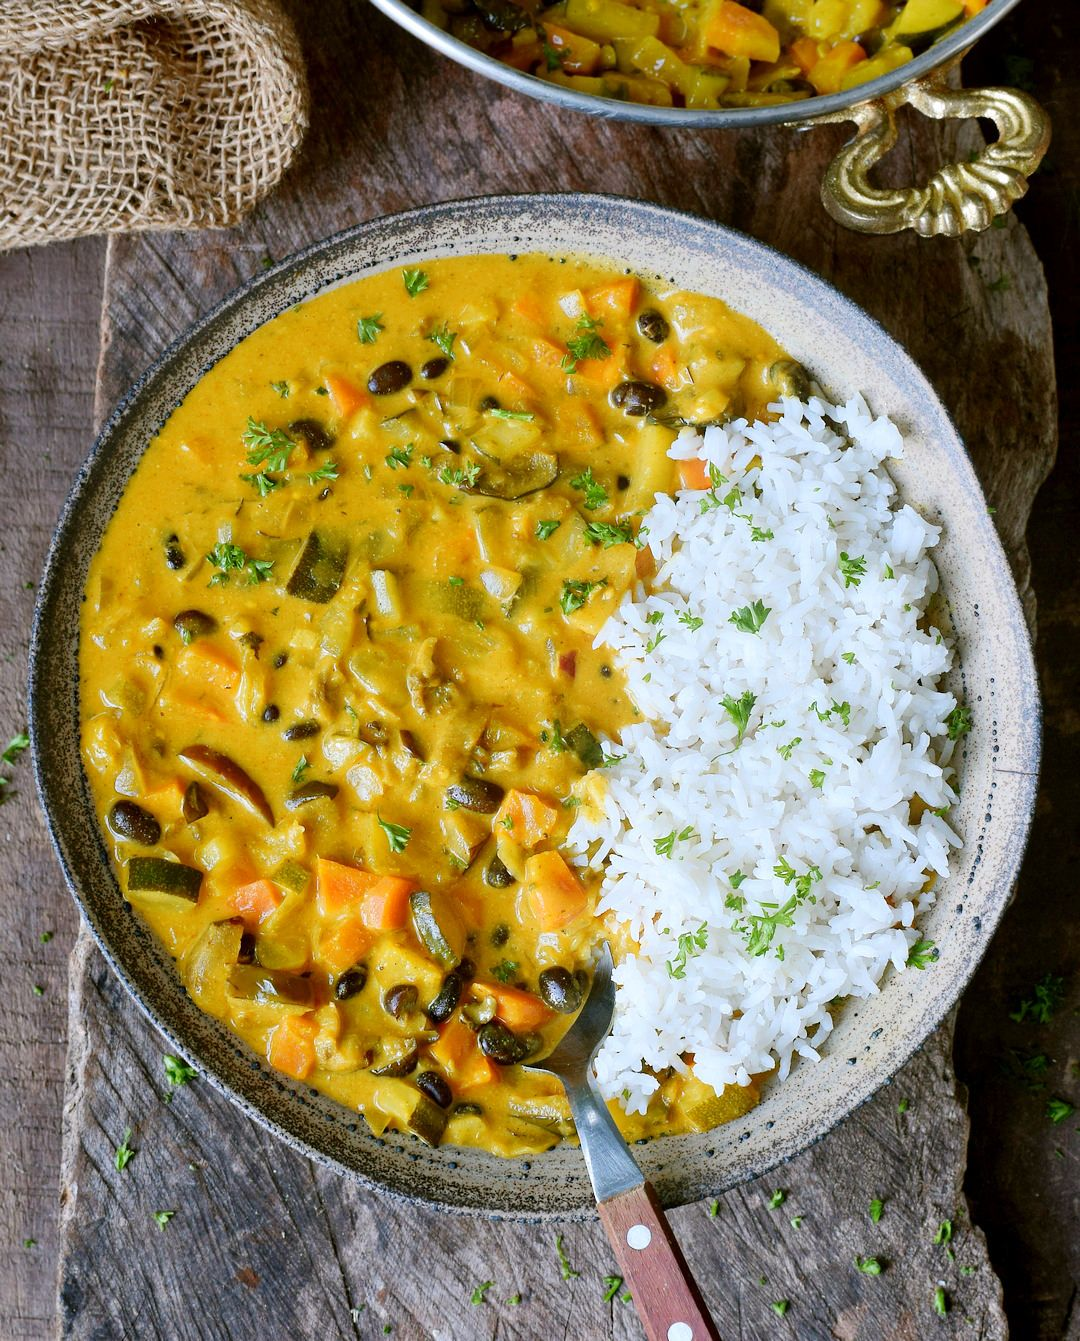 Vegetable Curry Recipe With Coconut Milk Pineapple And Chickpeas Or Beans With Images Vegetable Curry Recipes Slow Cooker Vegetable Curry Vegetable Curry Coconut Milk